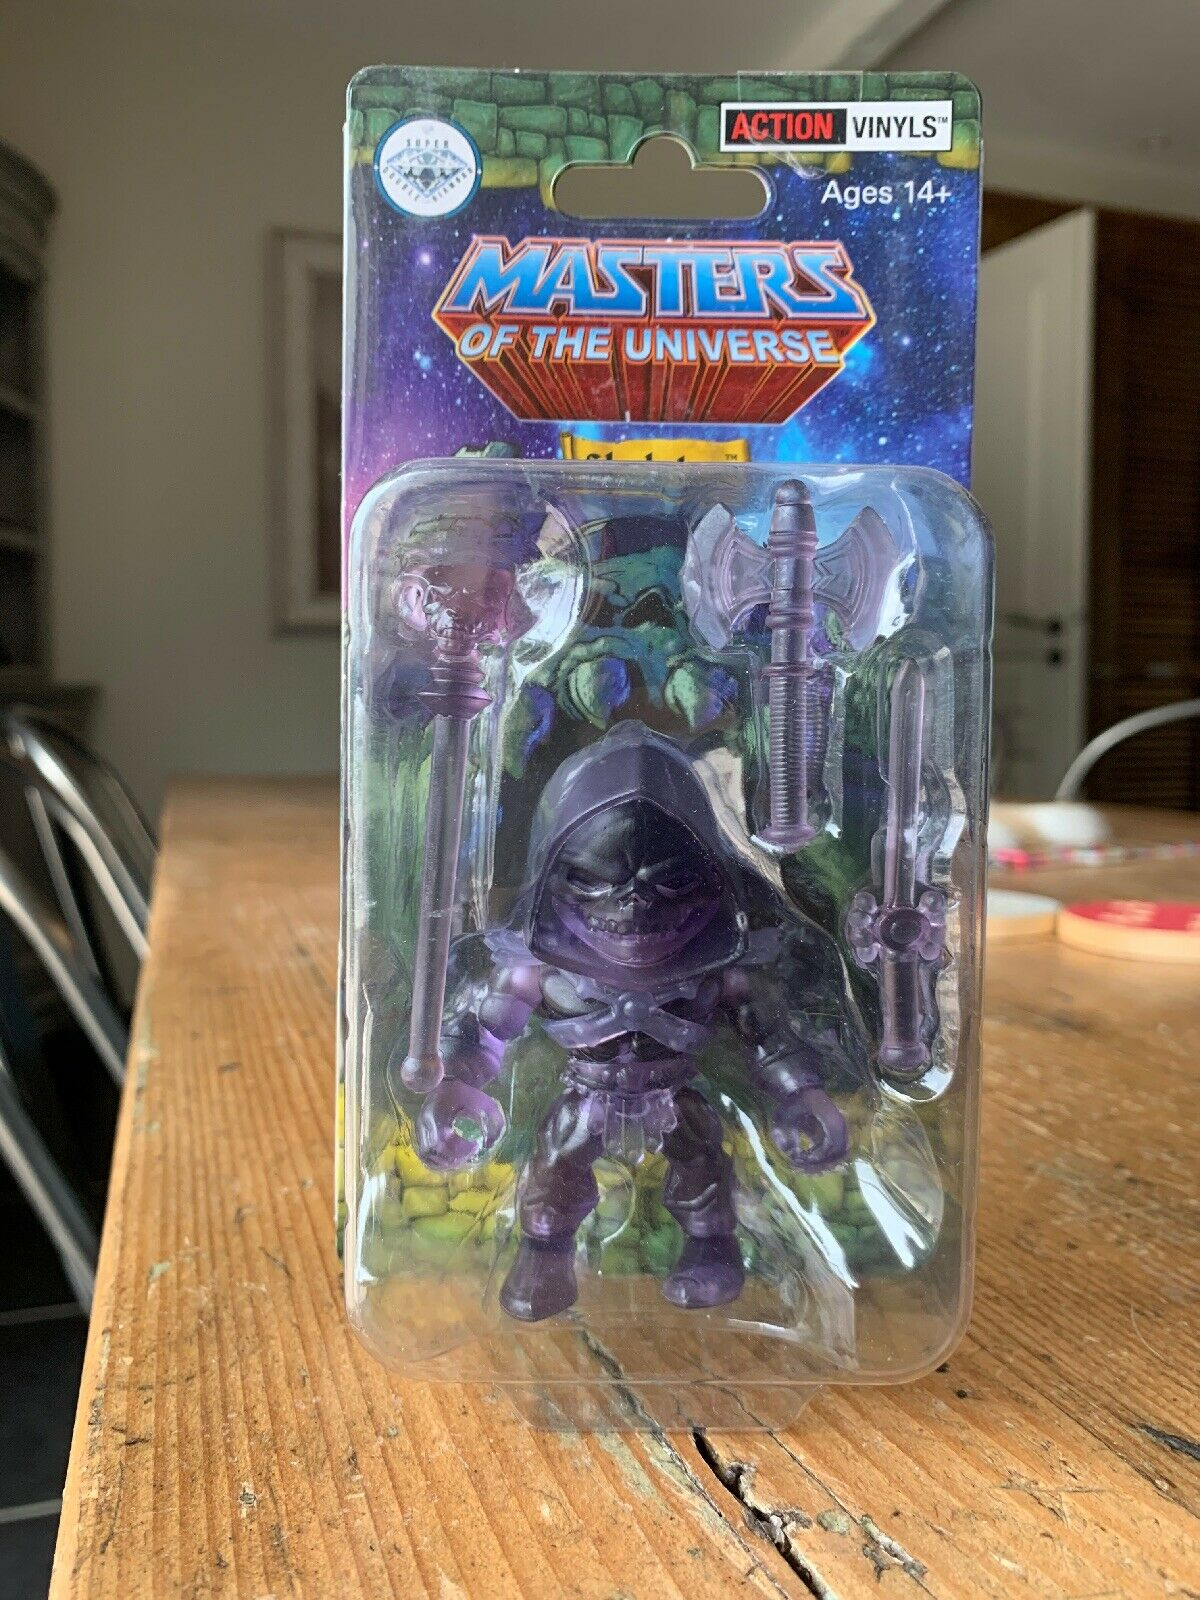 The loyal subjects Skeletor viola clear